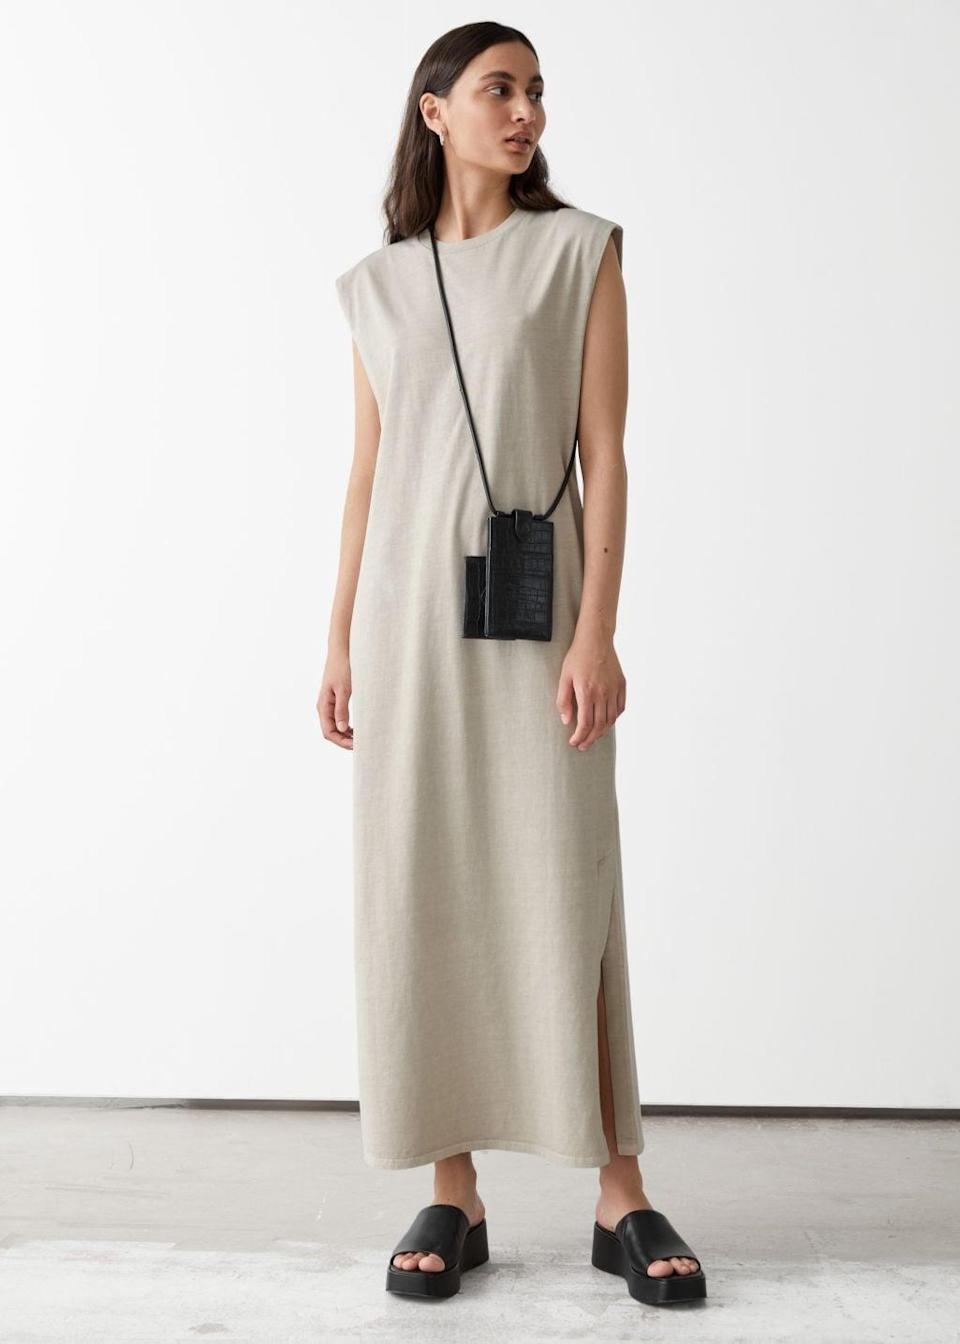 <p>It doesn't get more effortless than this <span>&amp; Other Stories Jersey Tank Midi Dress</span> ($59). It's literally designed to become your everyday uniform, with its loose silhouette and soft-looking fabric.</p>